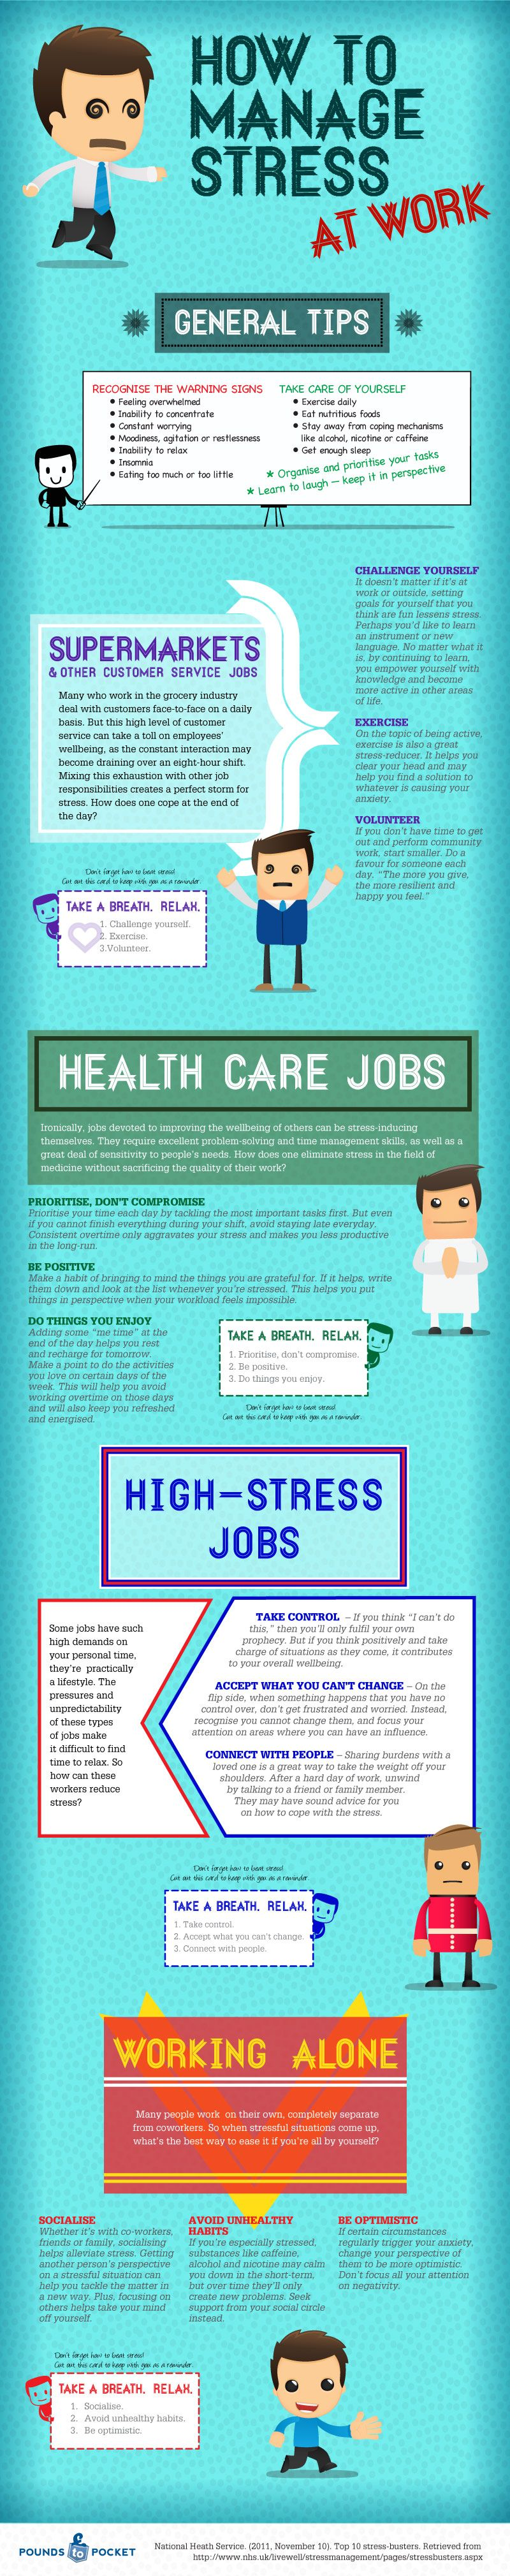 essay about workplace stress Another main cause of stress is workplace stress stress in workplace can come from inability to pass the minimum expectation and cope with our duties.